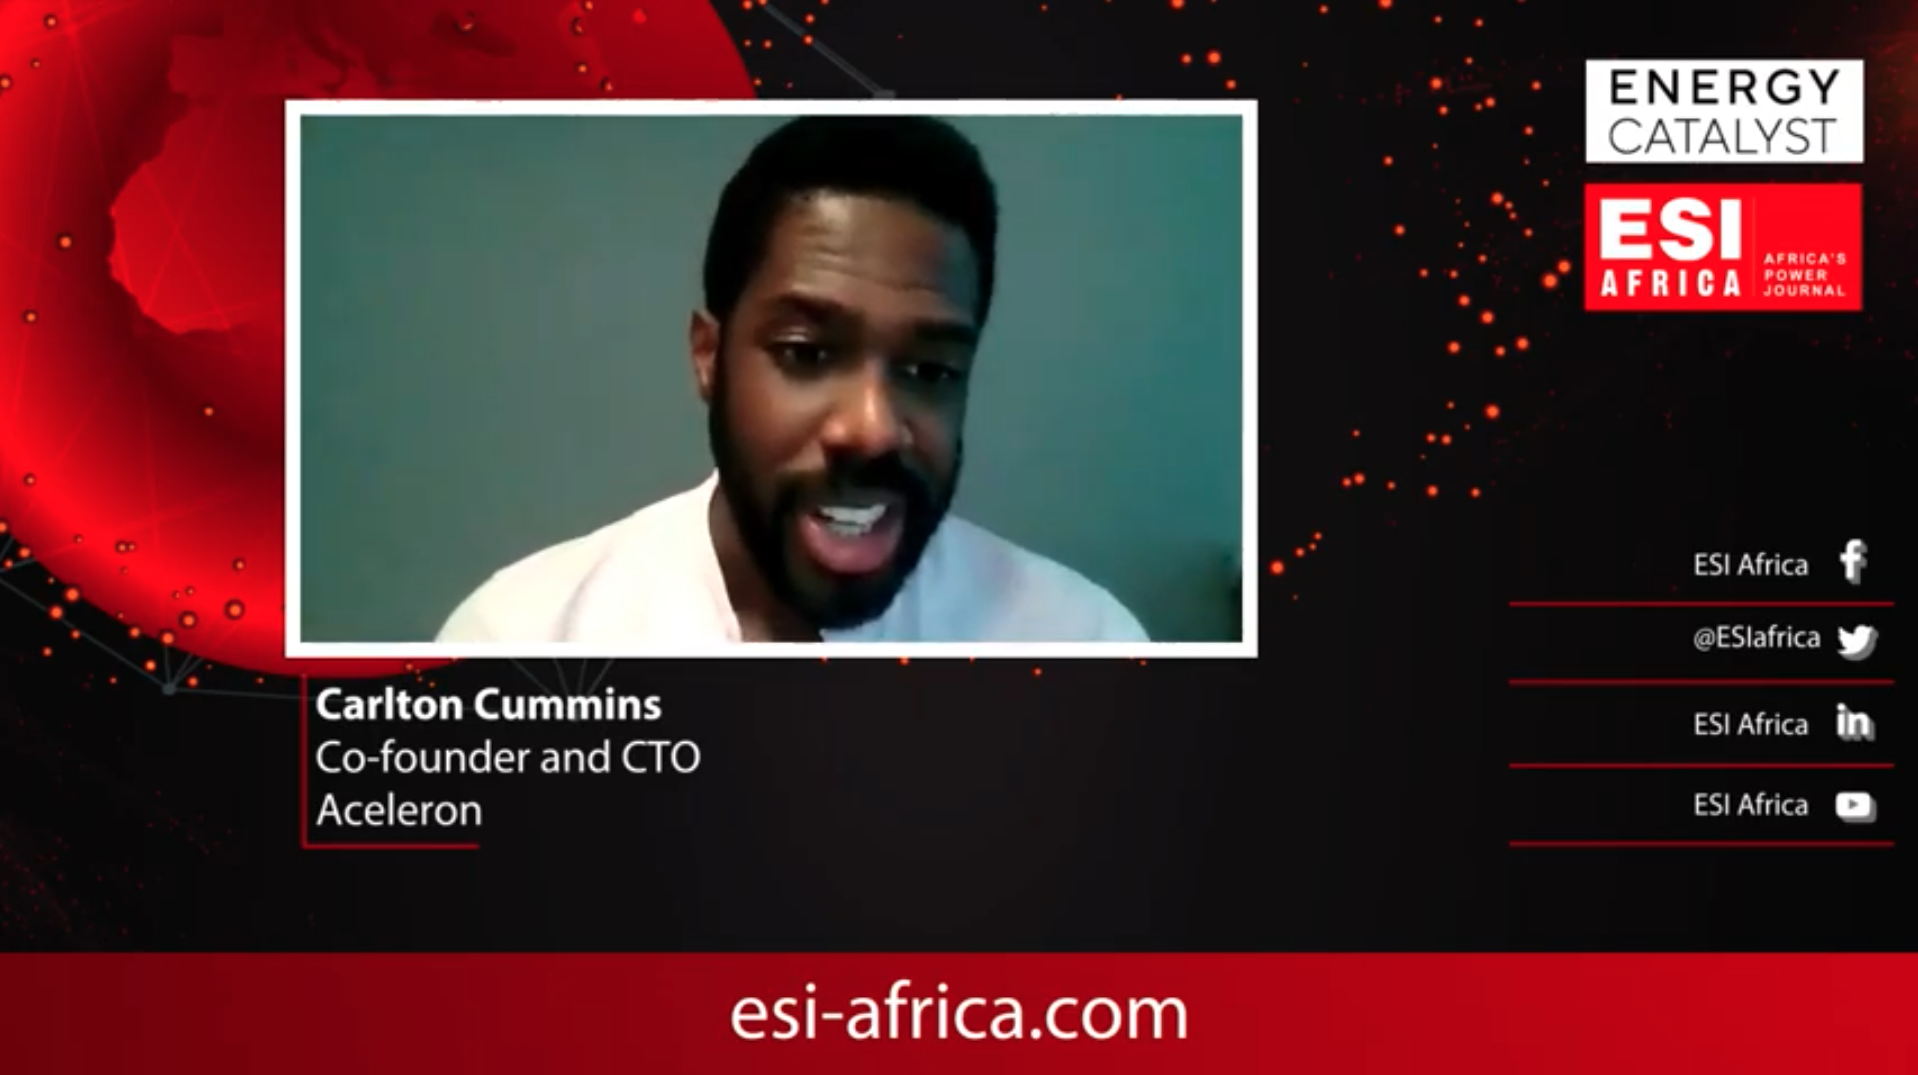 Carlton Cummins in an interview for ESI Africa